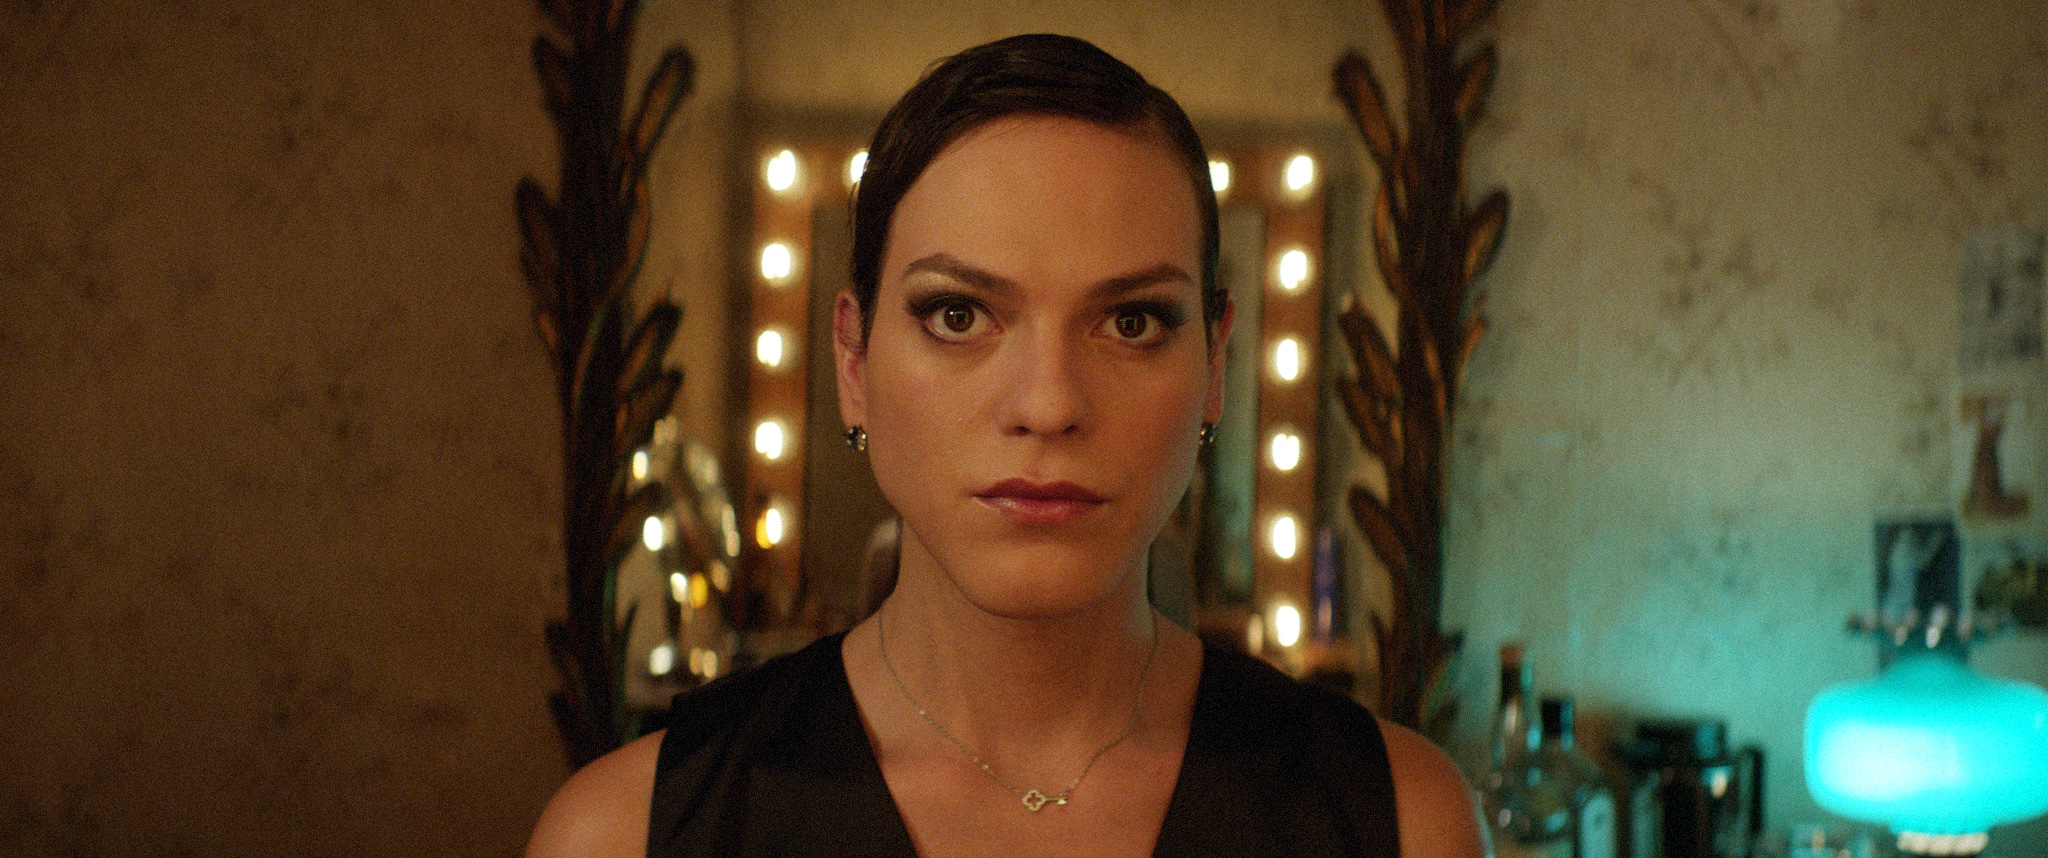 The charismatic Daniela Vega in A Fantastic Woman